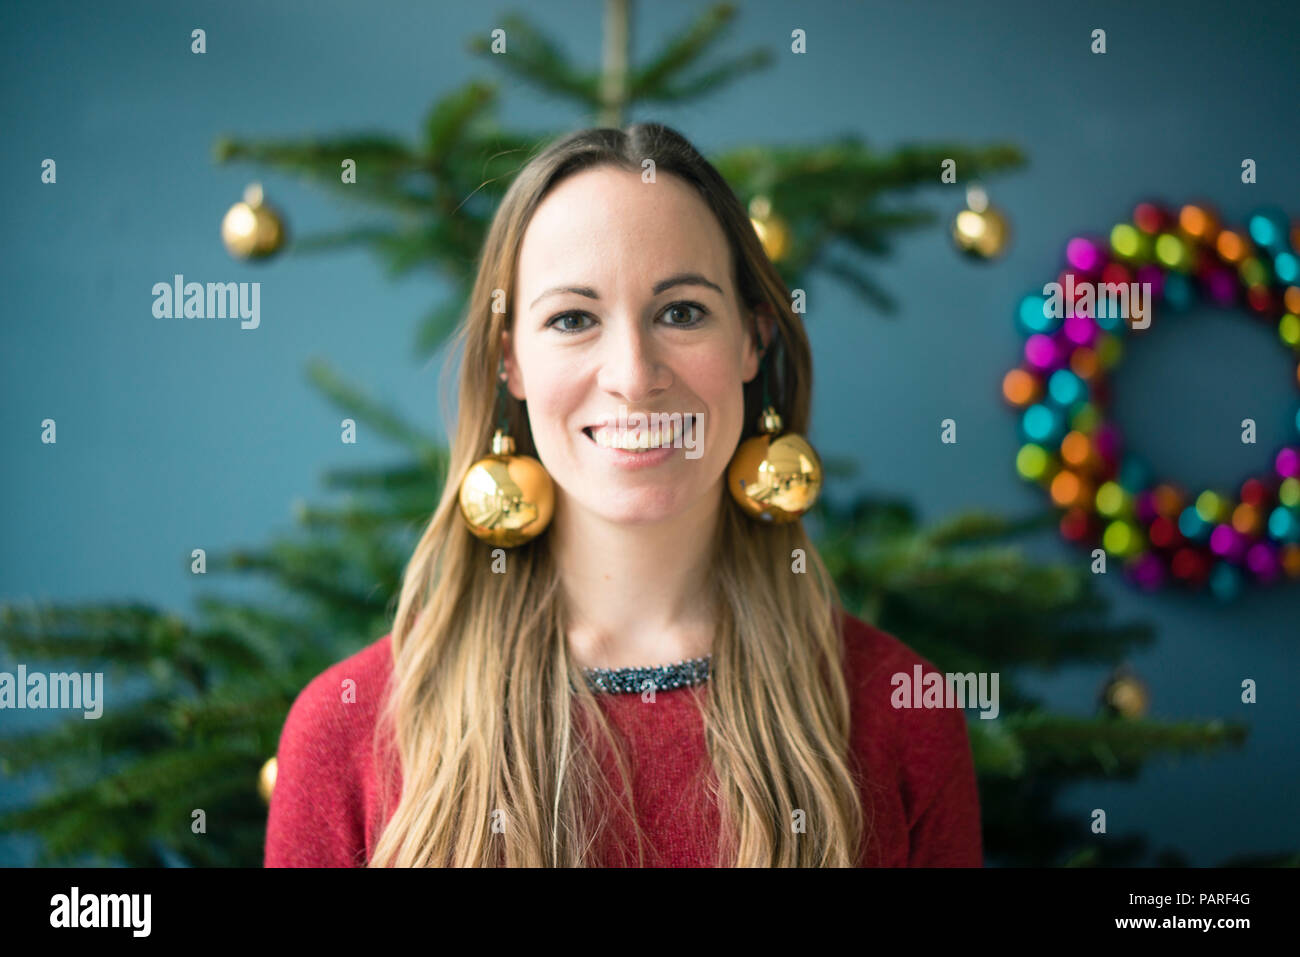 Portrait Of Smiling Woman Wearing Golden Christmas Baubles Earrings